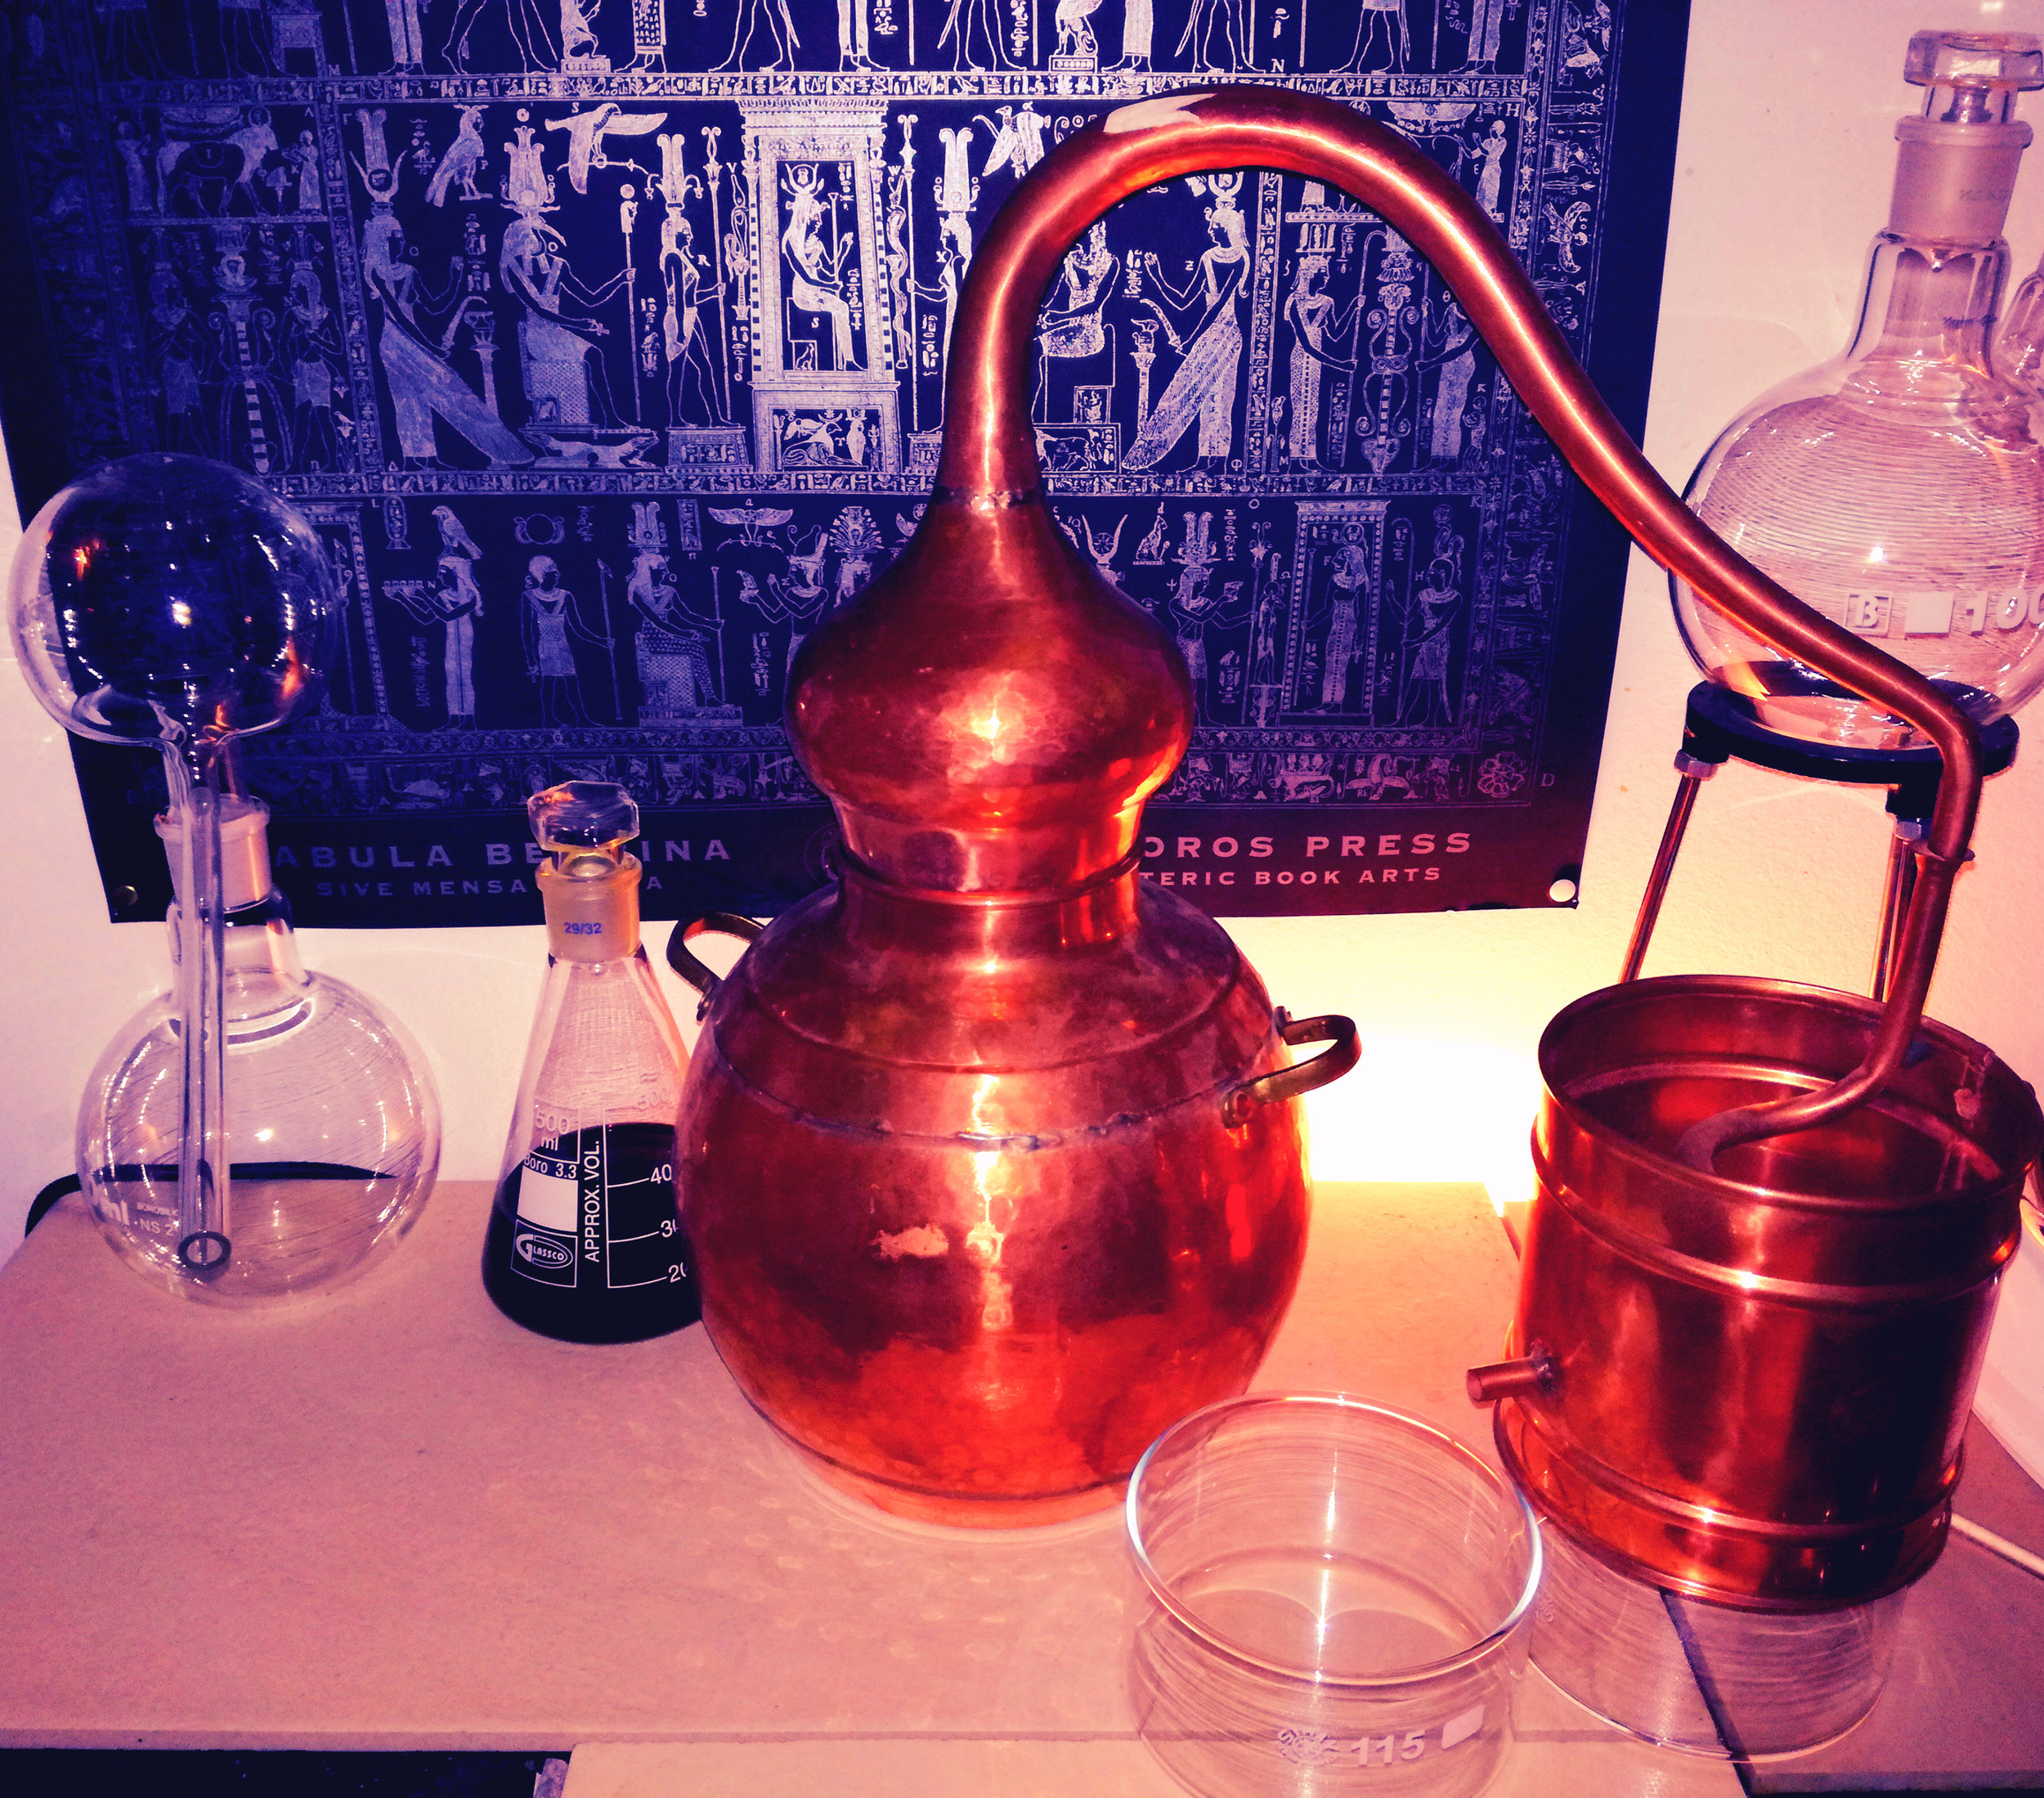 My lovely copper alembic still for small batches of artisan crafted essential oil distillations! This one is used for Water-Distillations. I also have equipment for Steam-Distillation.